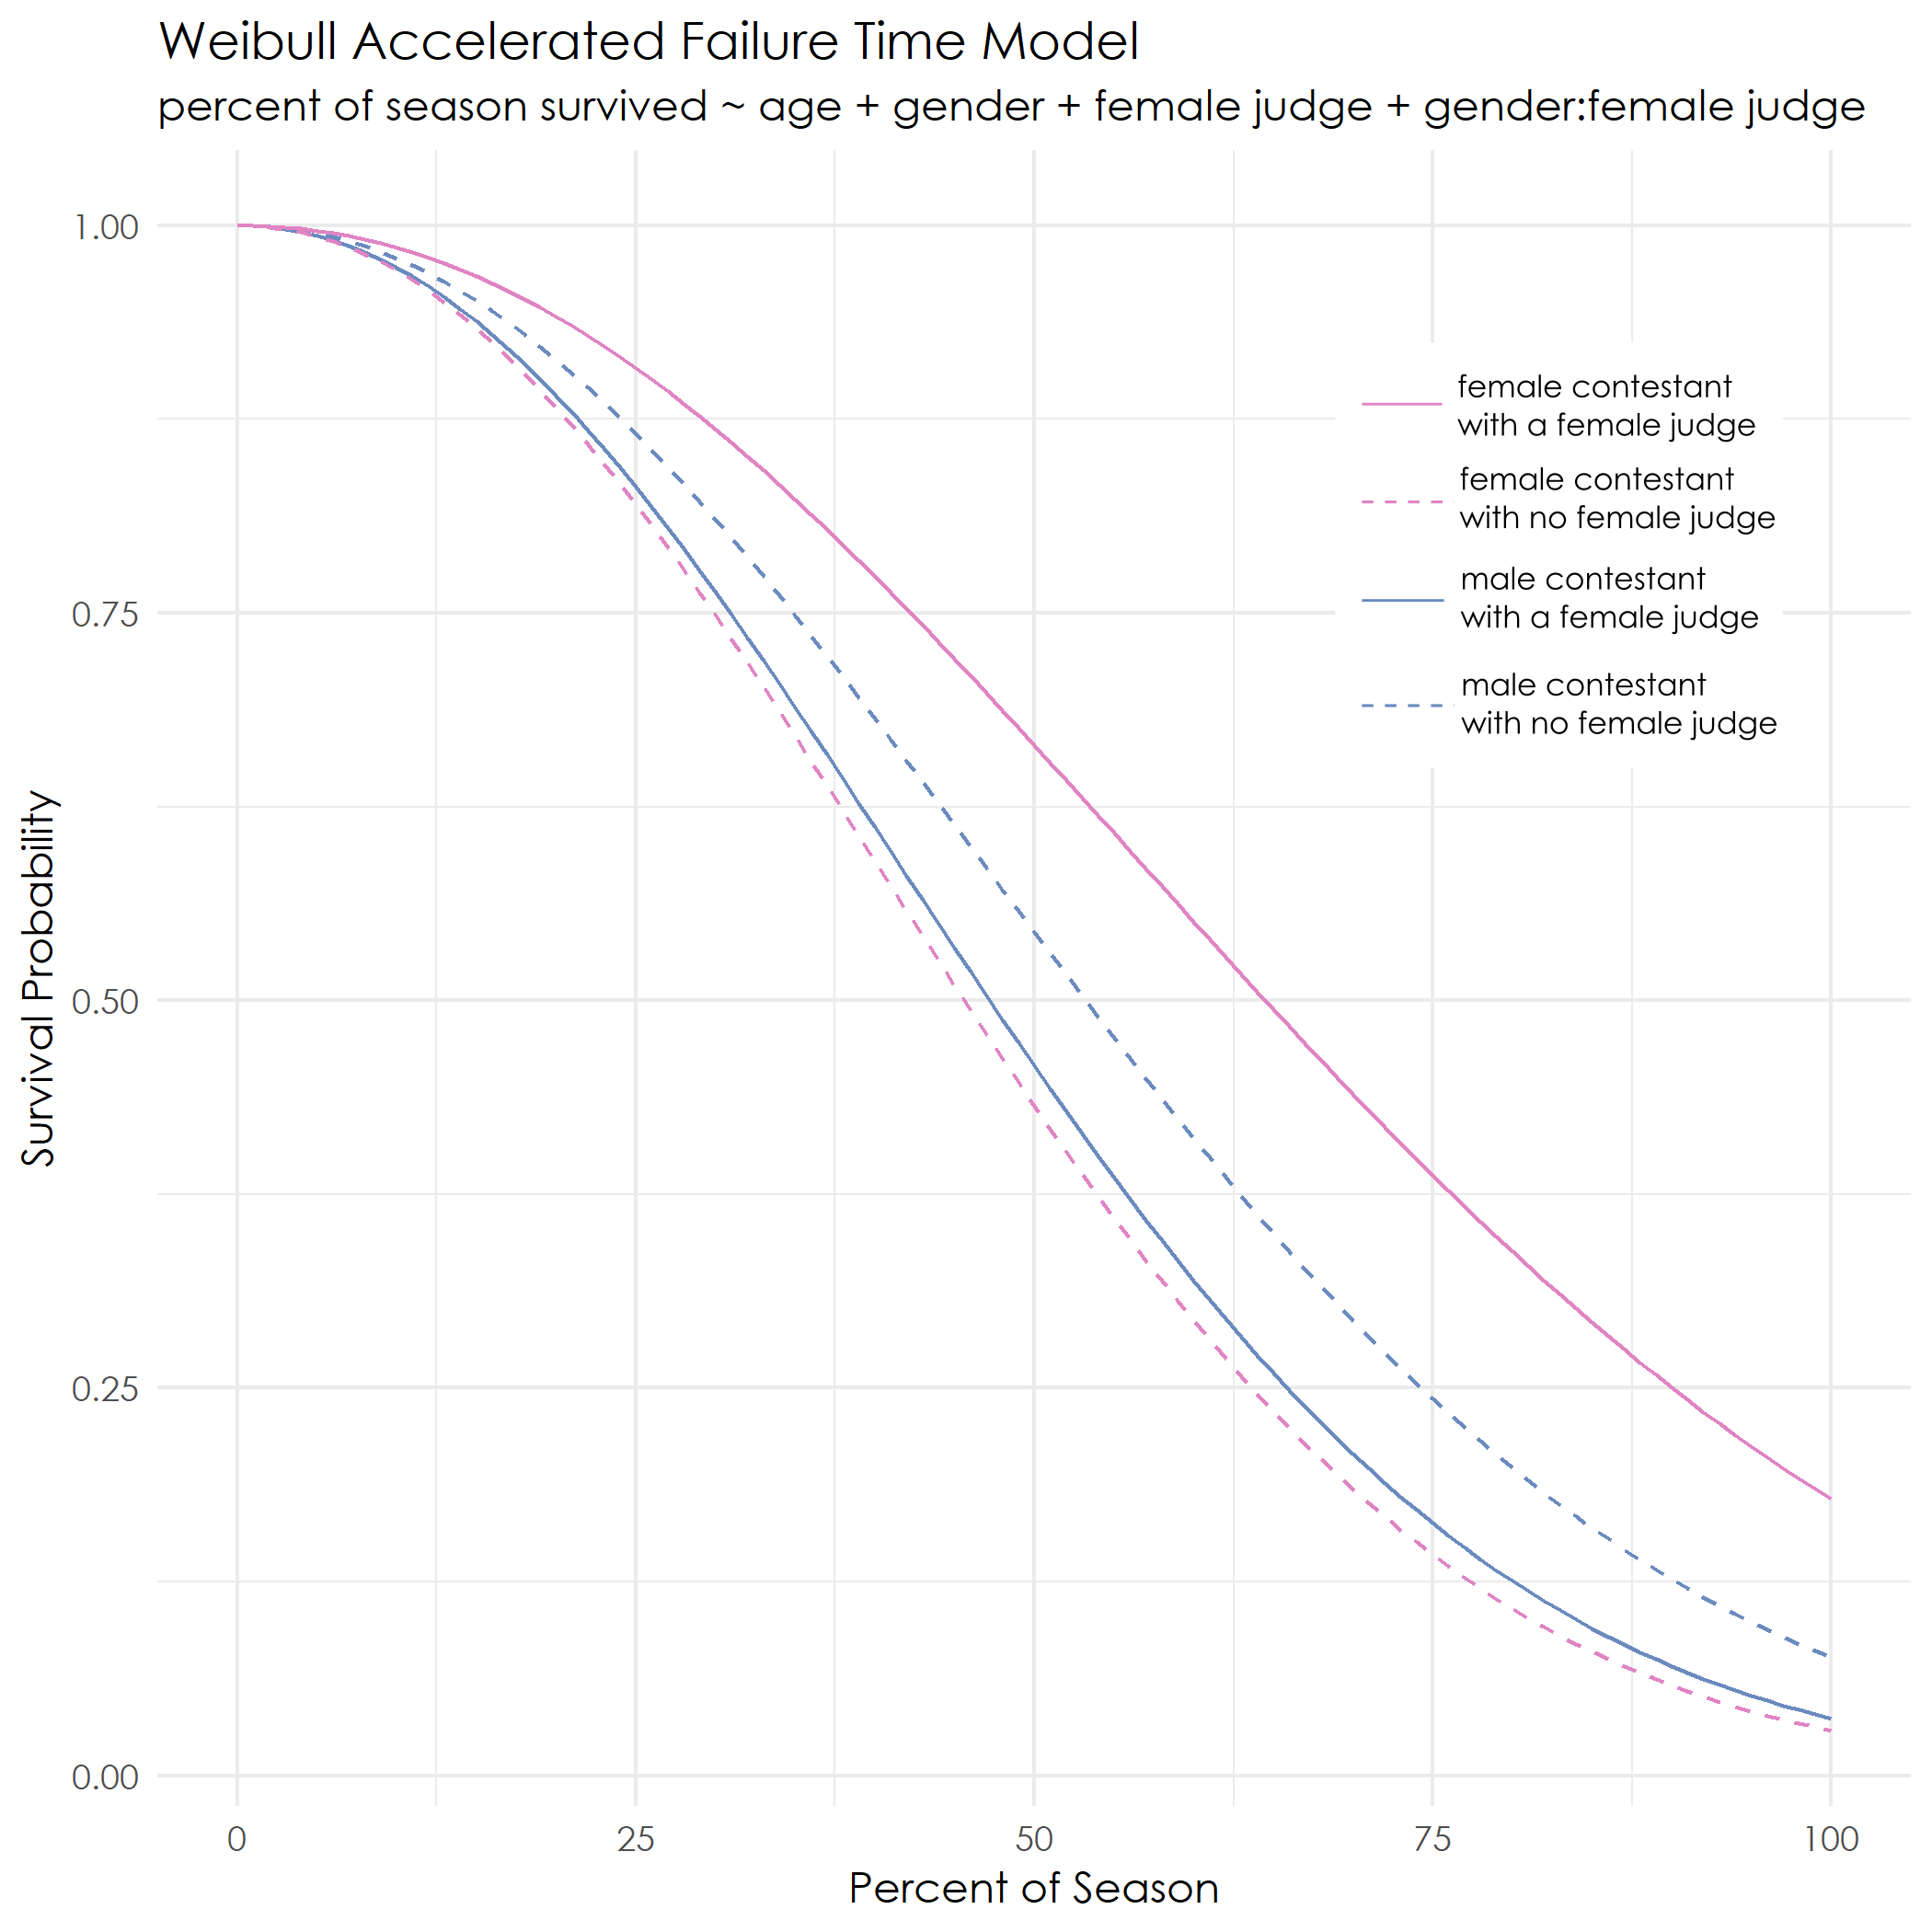 model showing survival is better for female contestants with a female judge